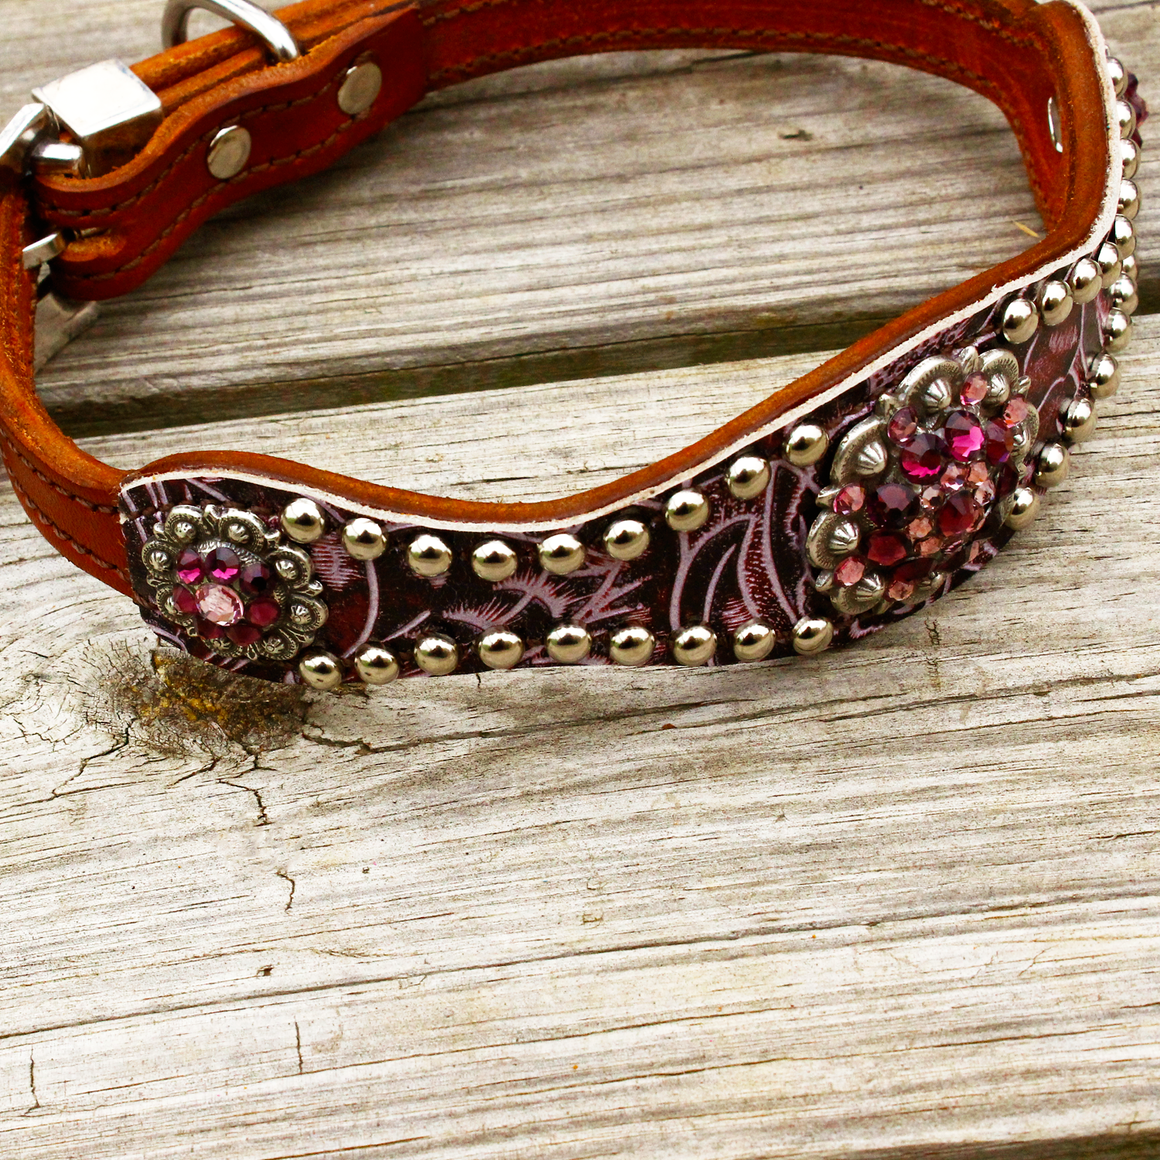 Purple Filigree Scallop Dog Collar w/Amethyst & Lt. Amethyst Conchos & Buckle